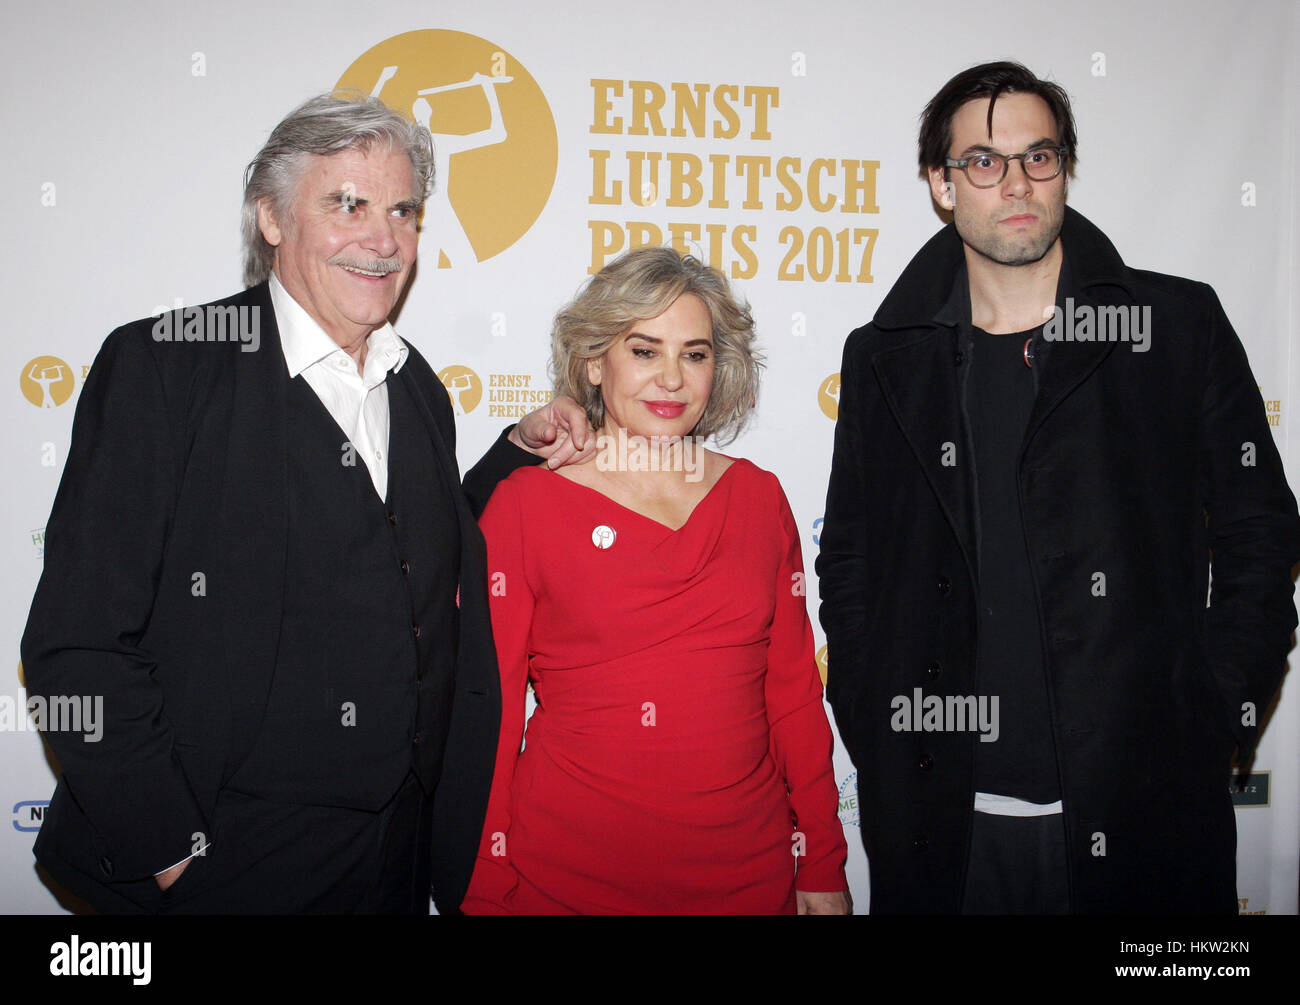 Berlin, Germany. 29th Jan, 2017. Actor Peter Simonischek, his wife Brigitte Karner and son Max arrive at the award ceremony of the Ernst Lubitsch Award at the cinema Babylon in Berlin, Germany, 29 January 2017. Photo: XAMAX/dpa/Alamy Live News Stock Photo